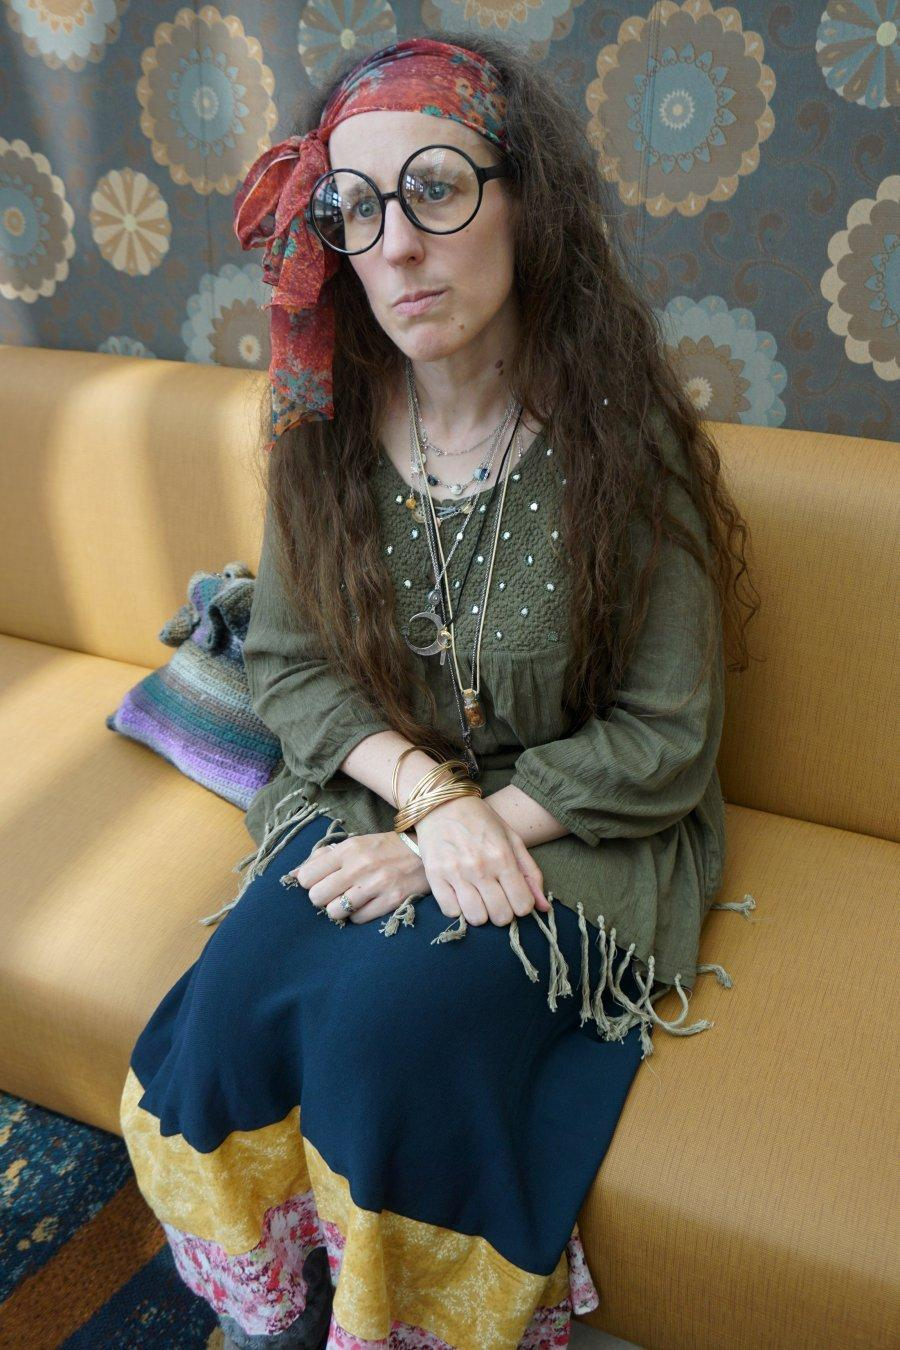 There weren't any Hogwarts-y spots we could find at #LongBeachComicCon, so we improvised. Her thought was to show #ProfessorTrelawney after she'd been sacked, sitting in maybe a train station, lost and unsure what to do. #cosplay #HarryPotter #lbcc2019 #lbcc